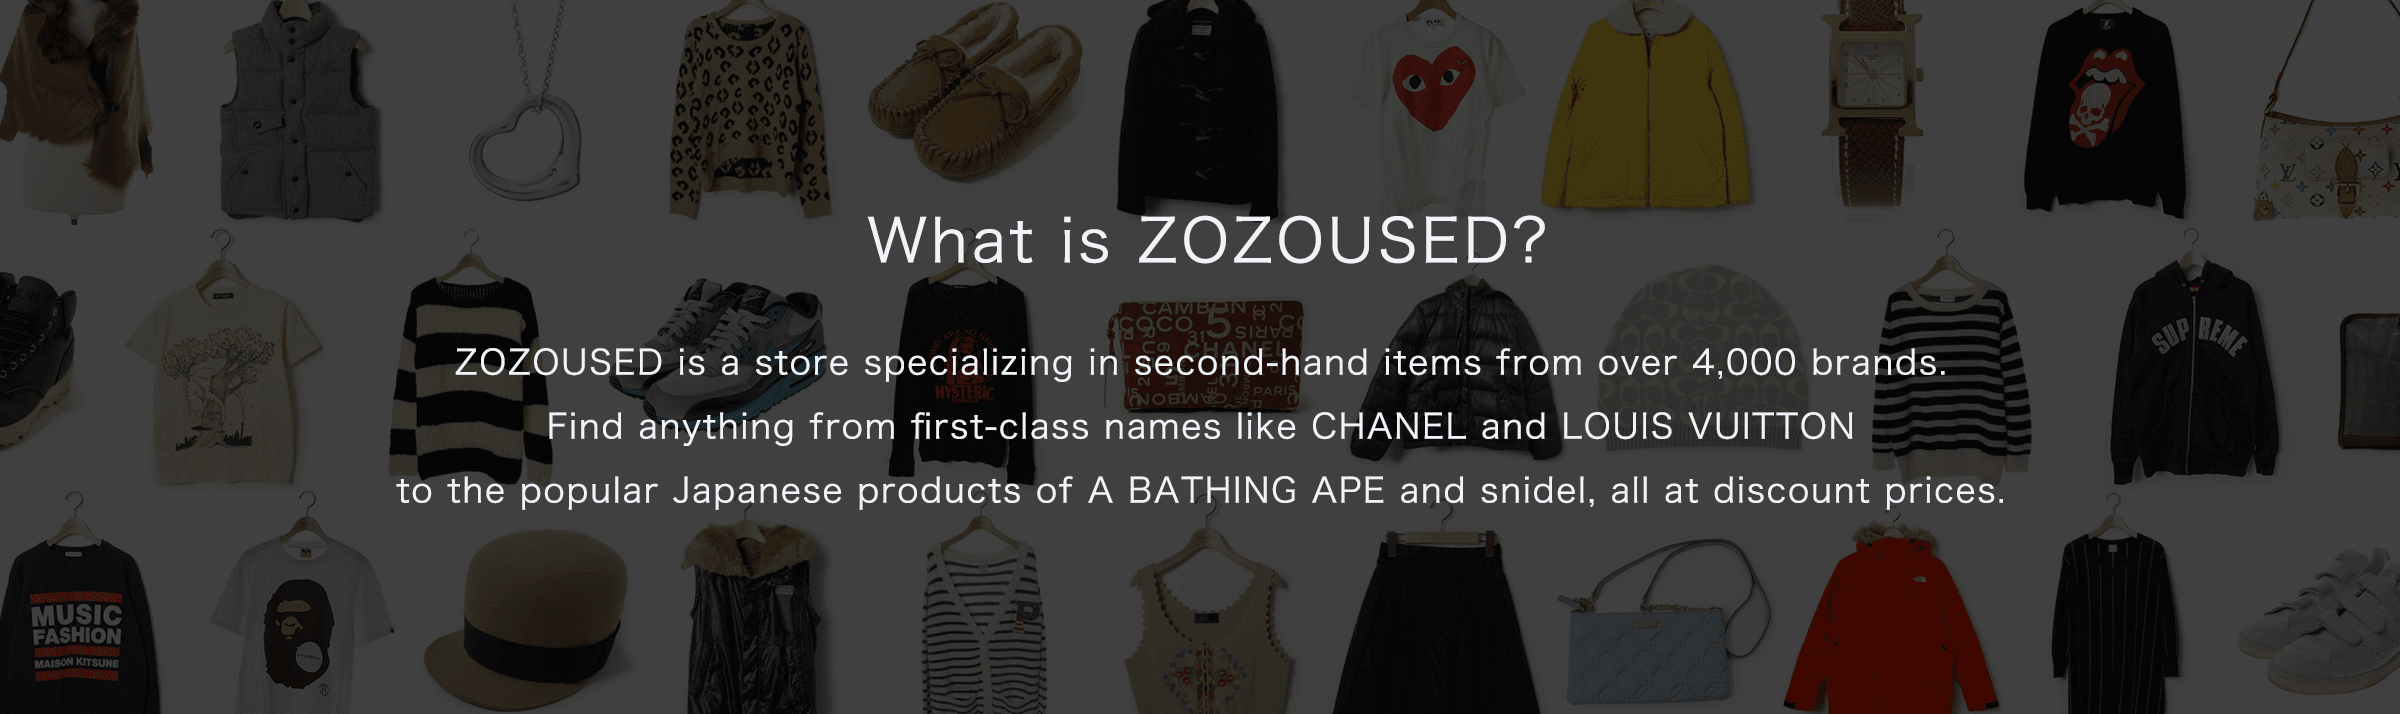 ZOZOUSED is a store specializing in second-hand items from over 4,000 brands. Find anything from first-class names like CHANEL and LOUIS VUITTON to the popular Japanese products of A BATHING APE and snidel, all at discount prices.